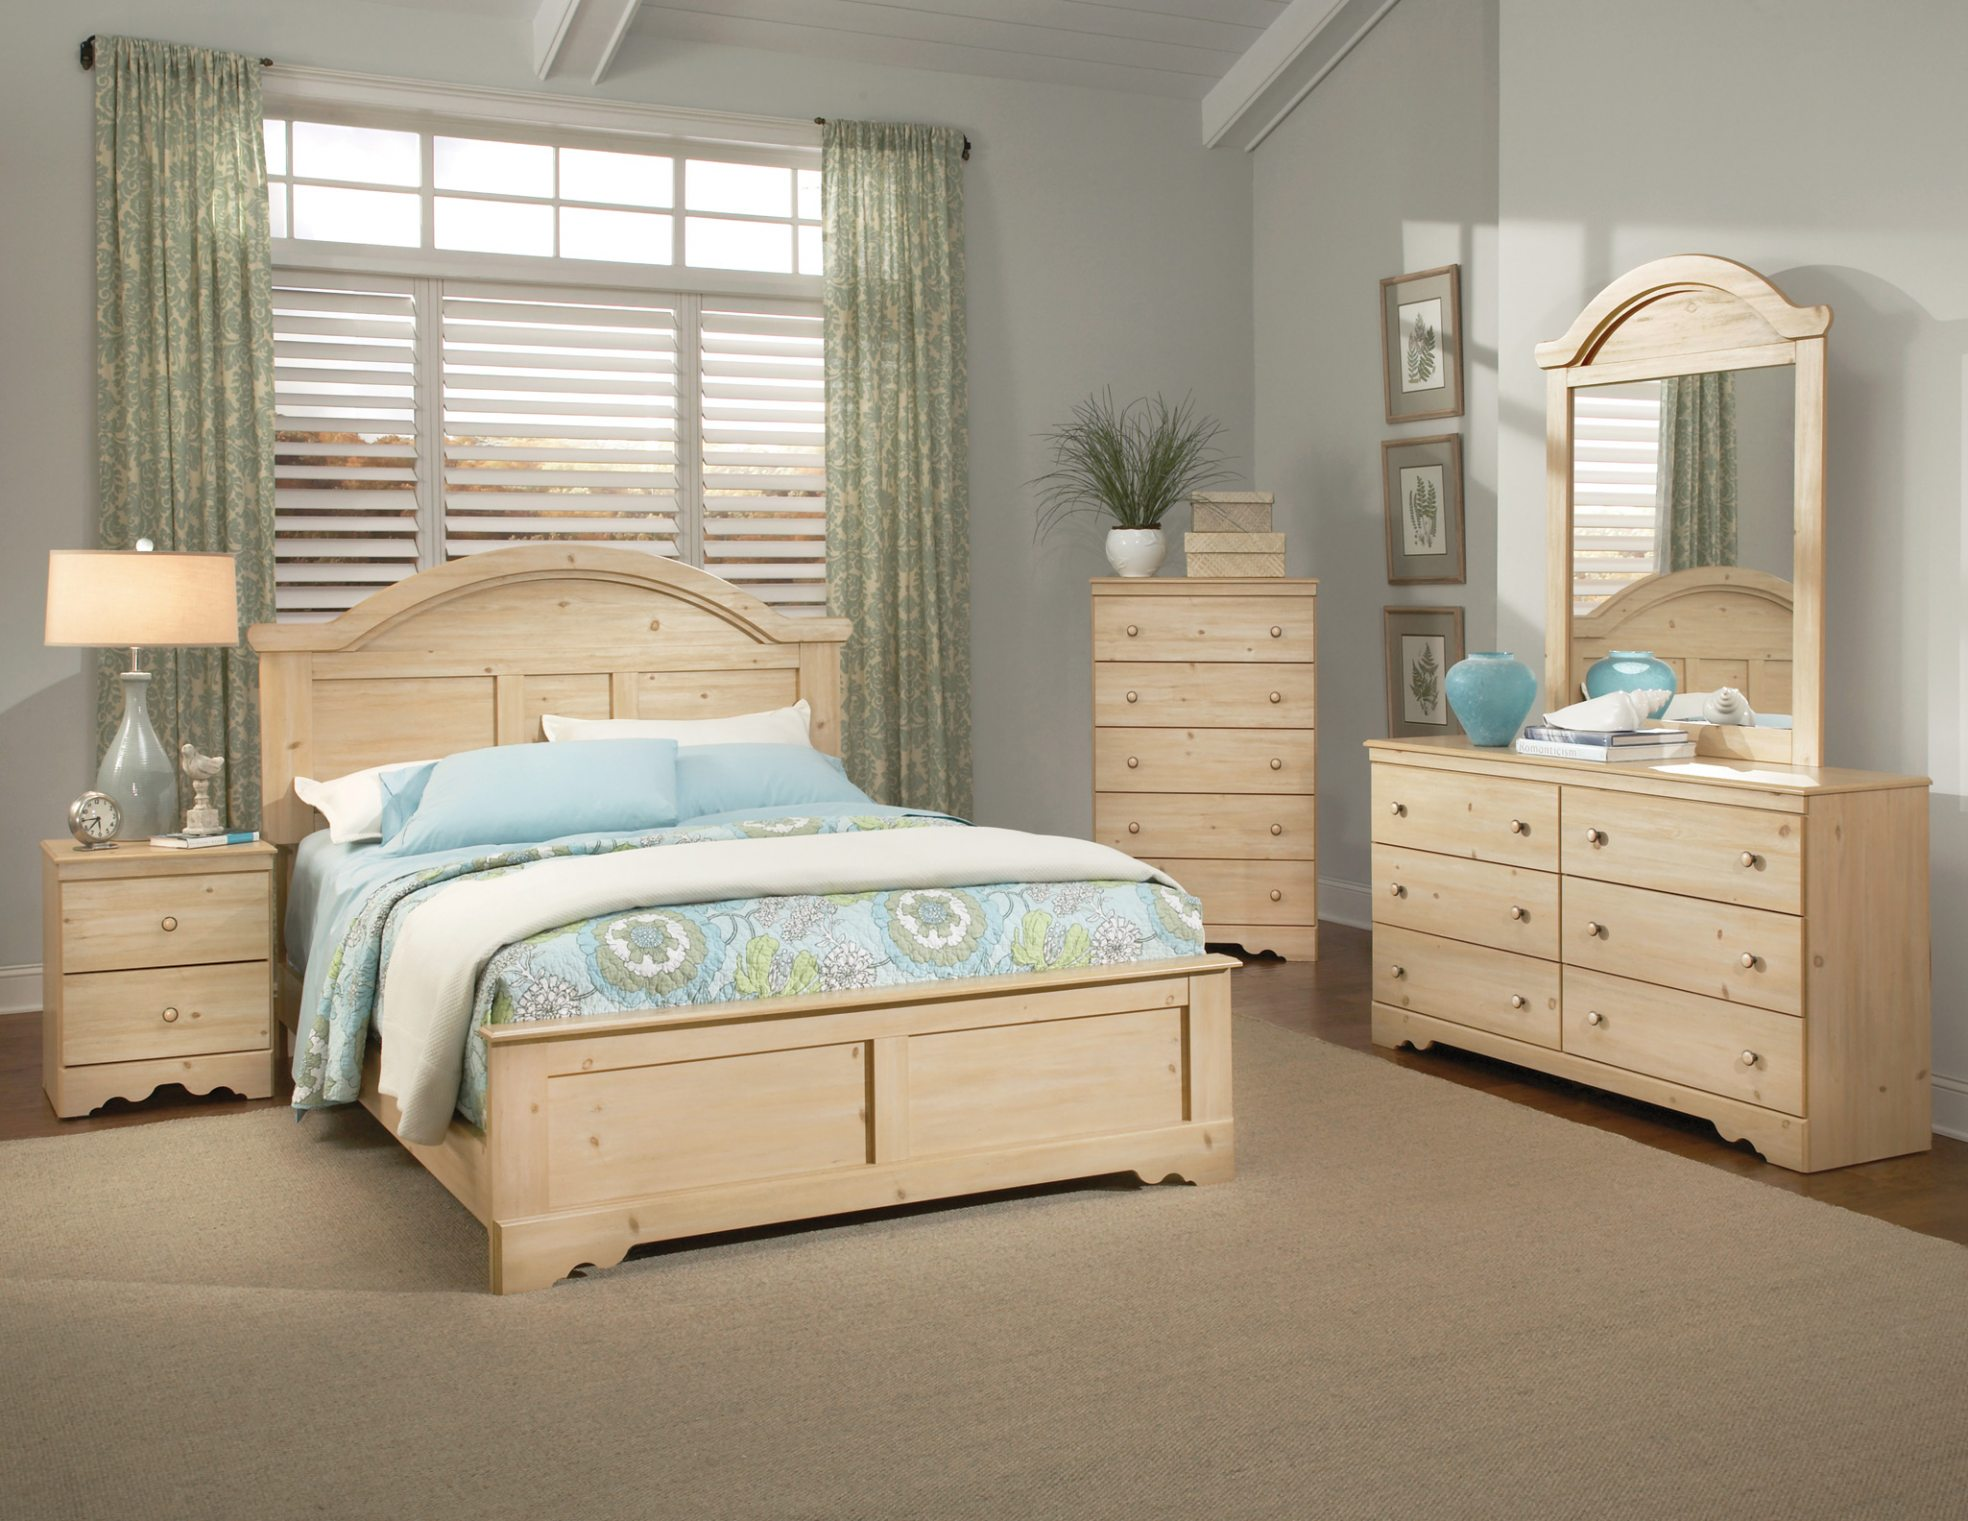 pine bedroom furniture set photo 4 of 7 image of: pine bedroom furniture sets (beautiful EIOCZIL